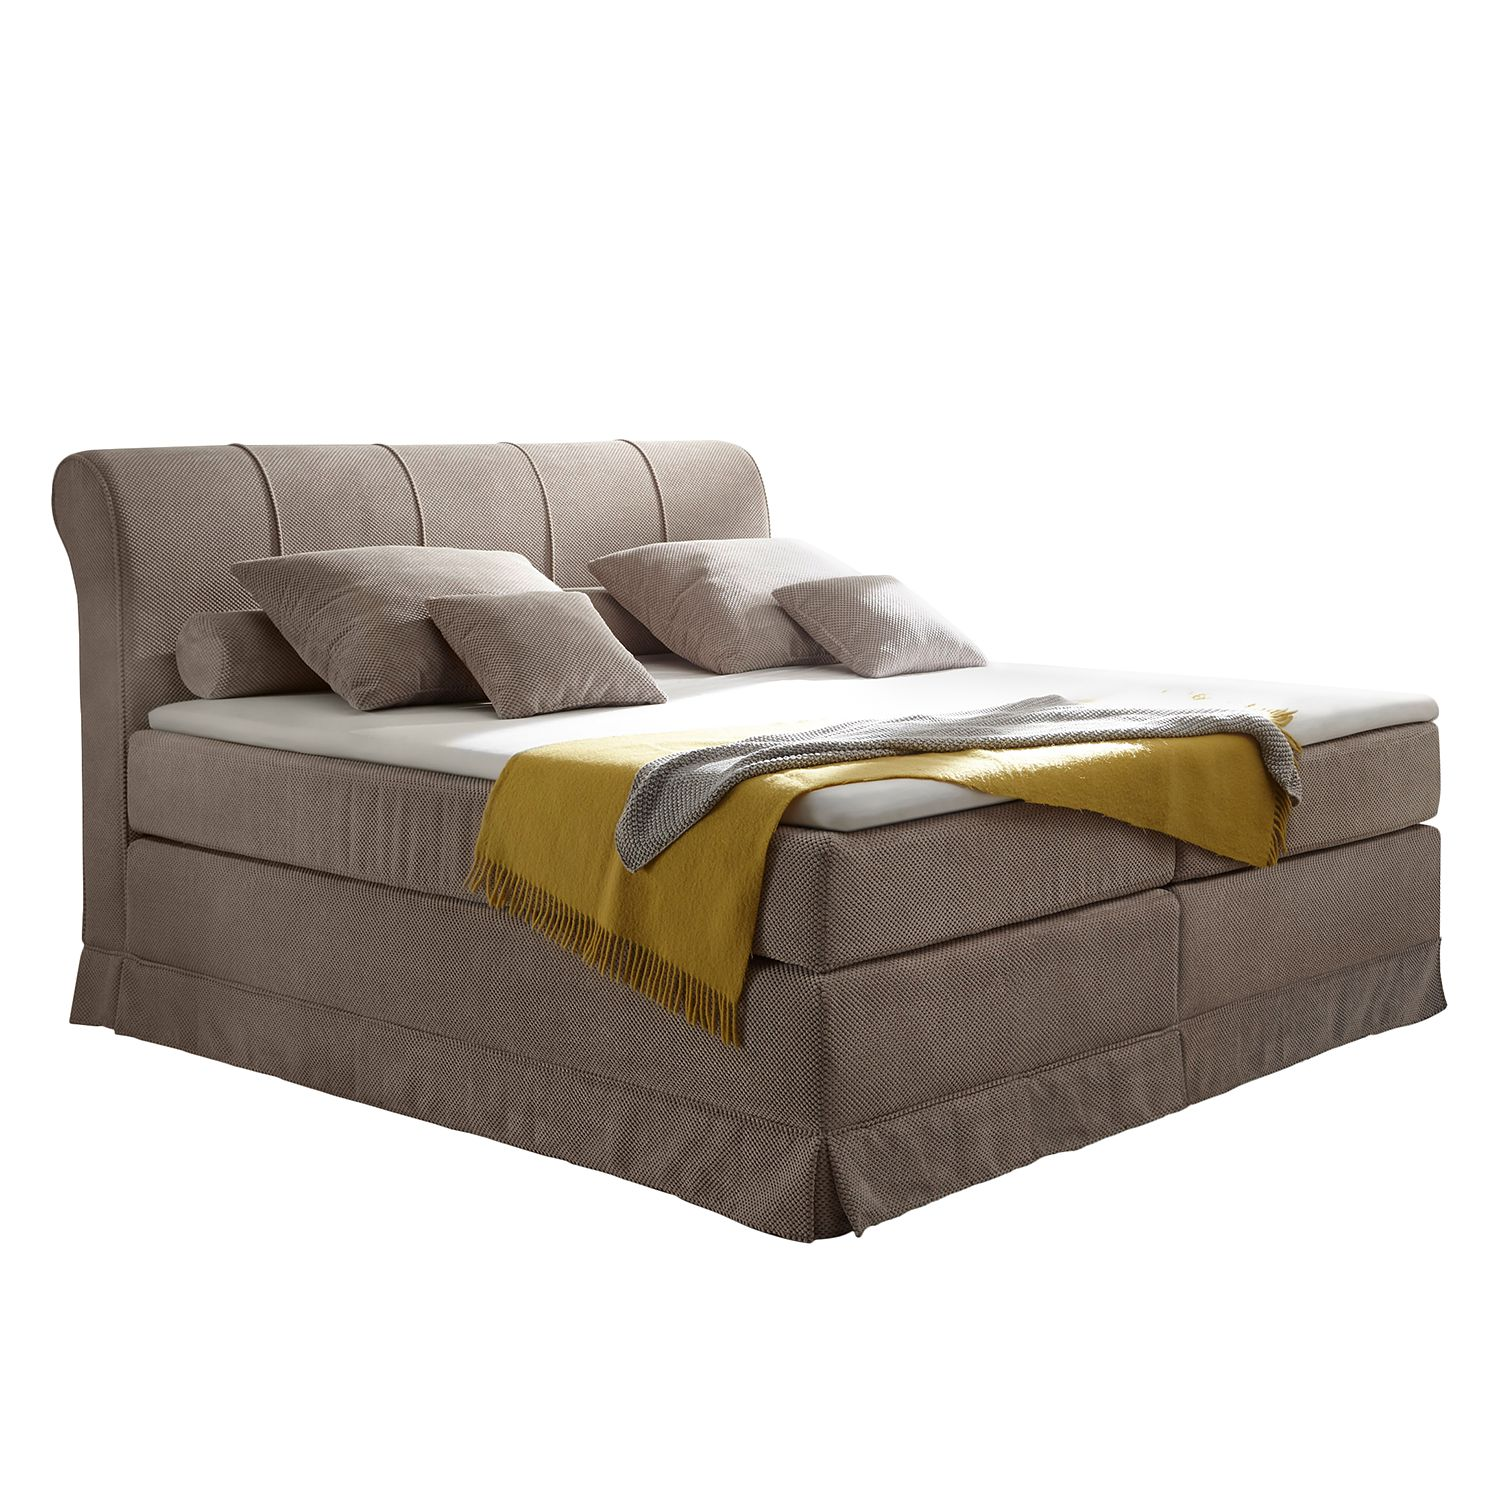 Lit boxspring Dixon - Microvelours - Beige, Ridgevalley